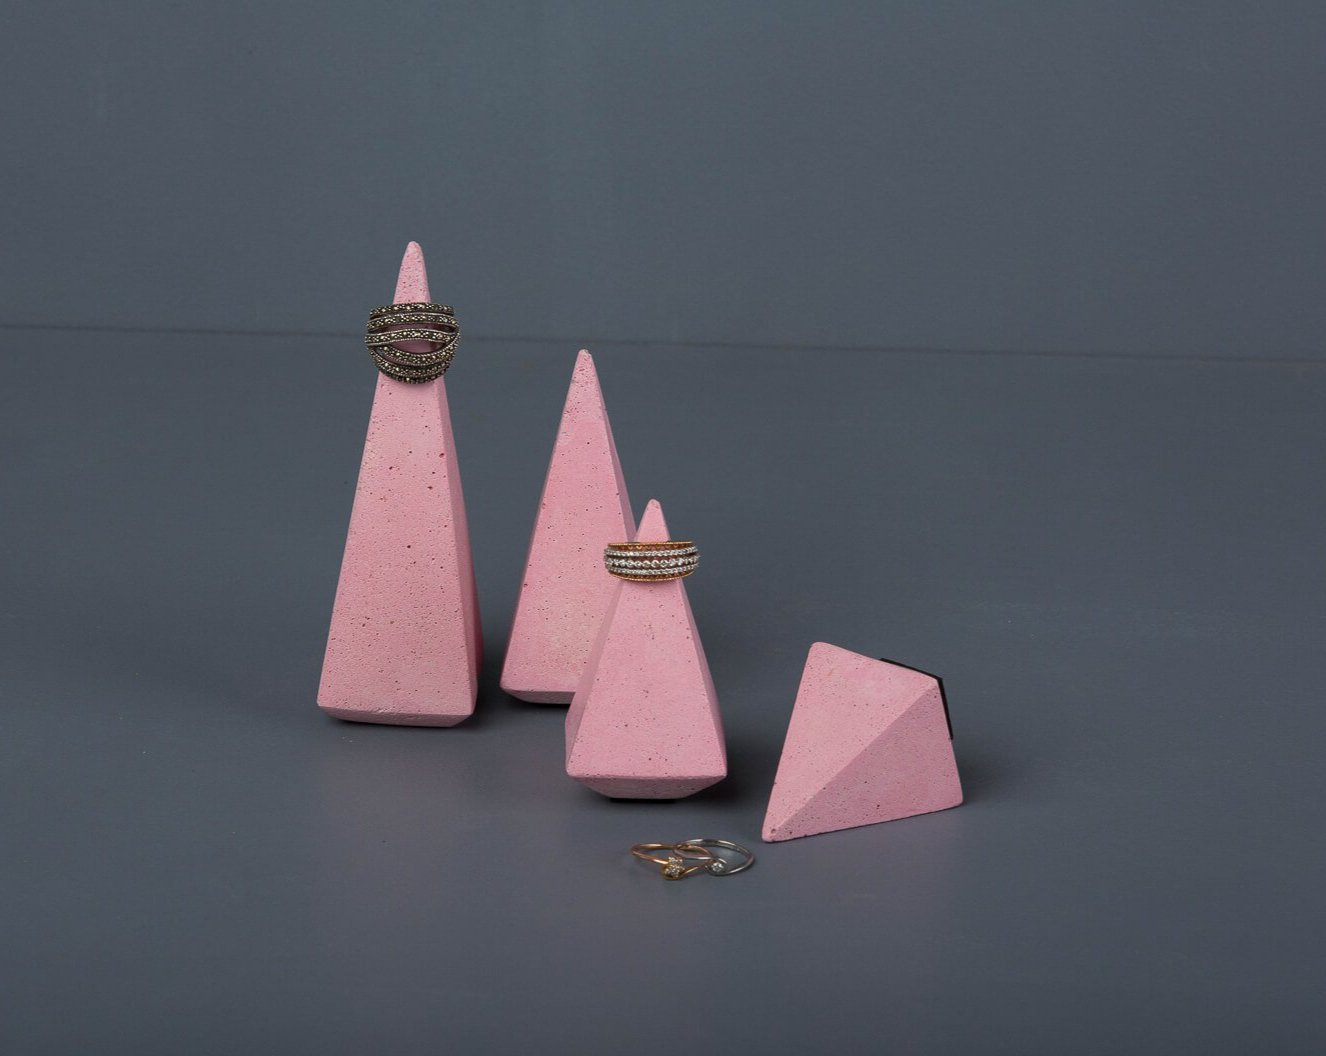 Concrete Soft Prism Jewellery Stands - Pink-Eliteearth